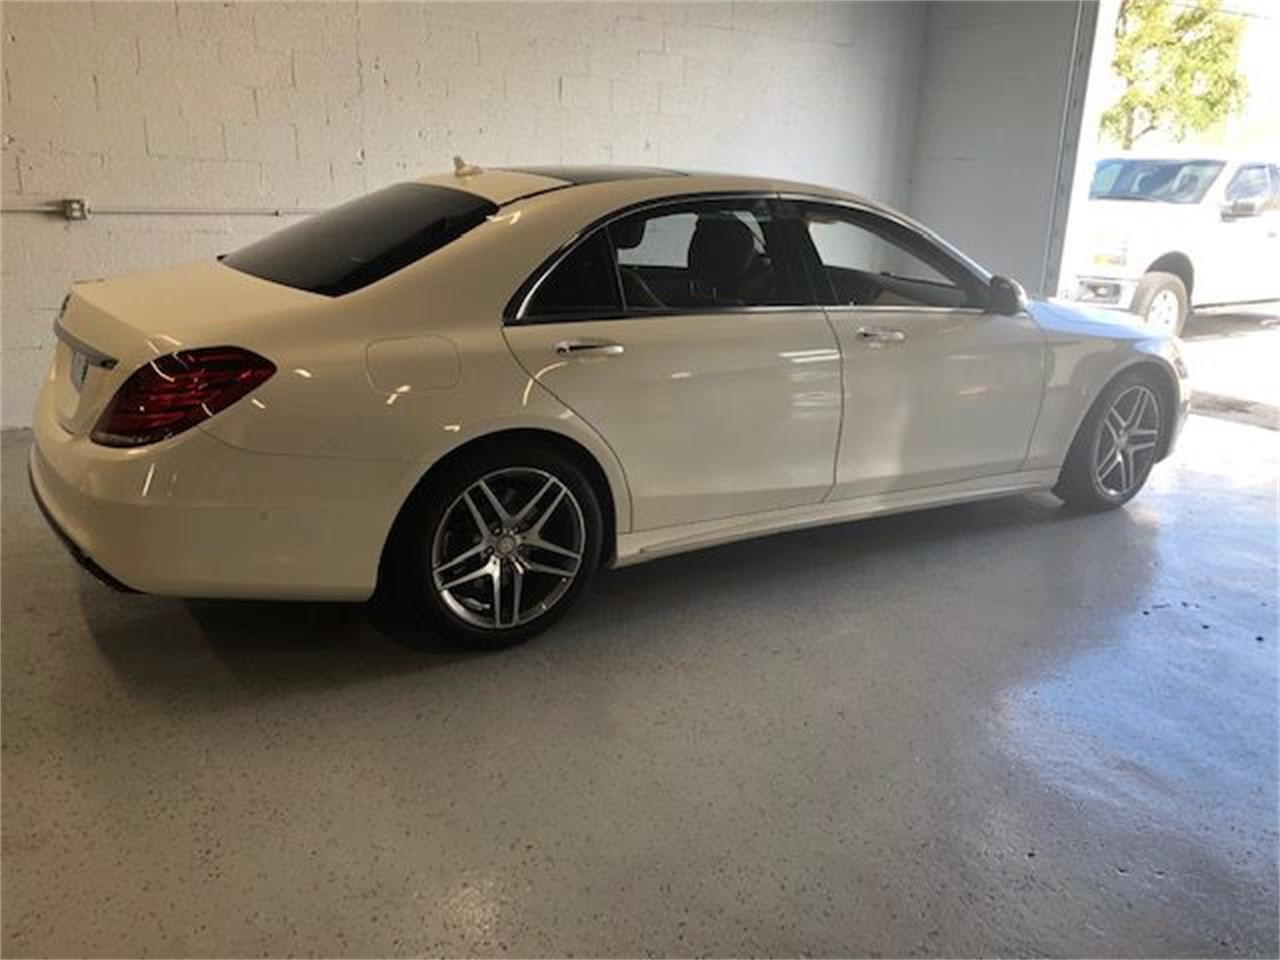 2014 Mercedes-Benz S-Class (CC-1313186) for sale in Boca Raton, Florida